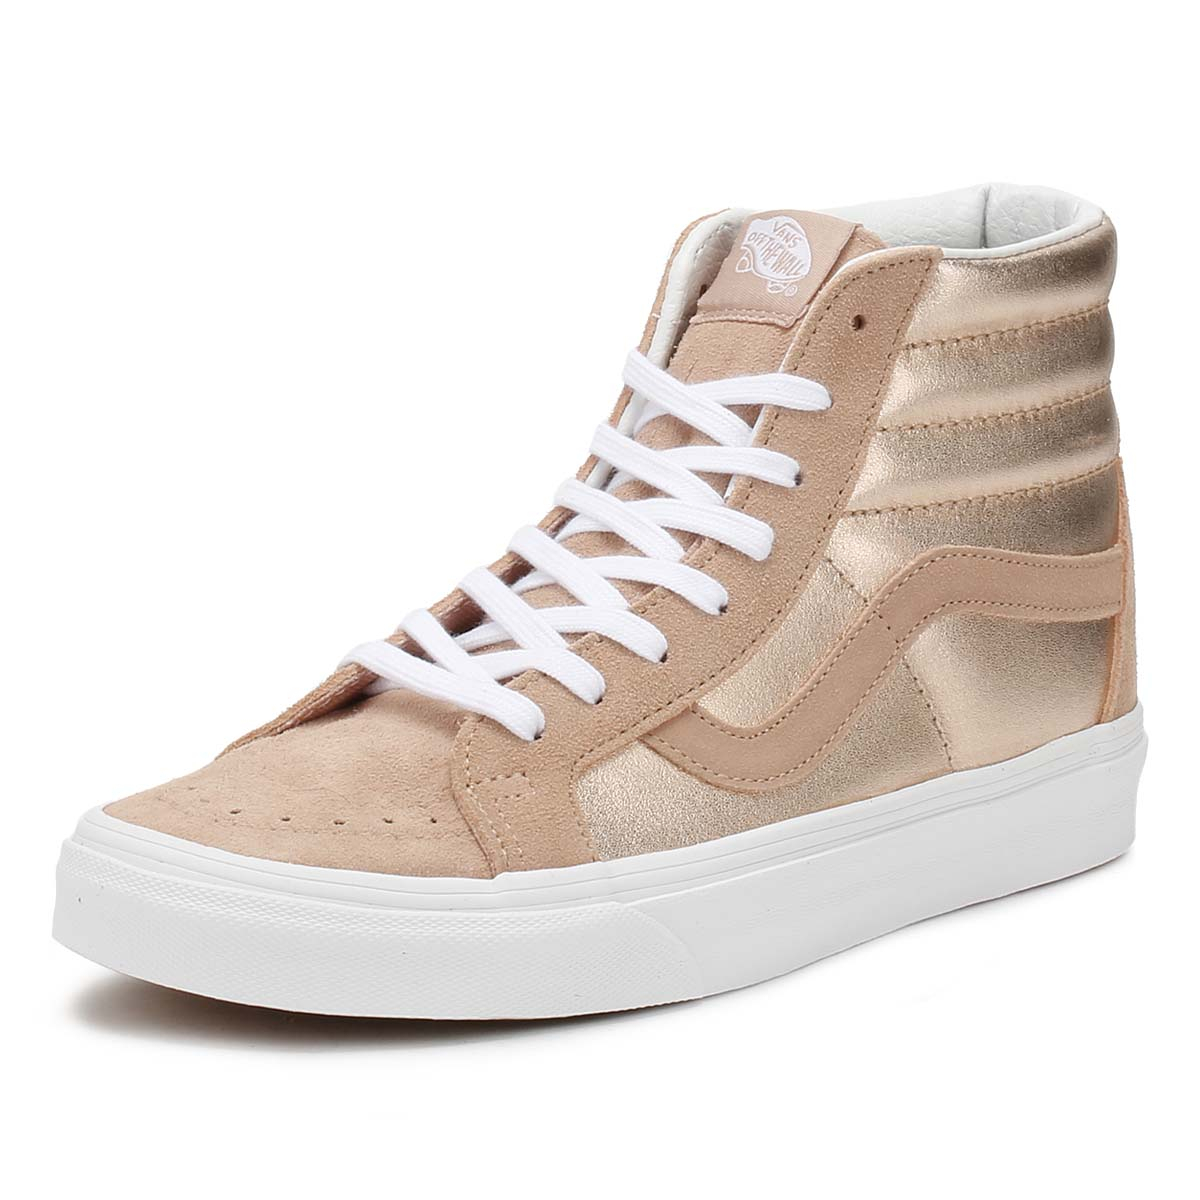 9a7e279c7f Details about Vans Womens Trainers Mahogany Rose   True White SK8-Hi  Reissue Skate Shoes